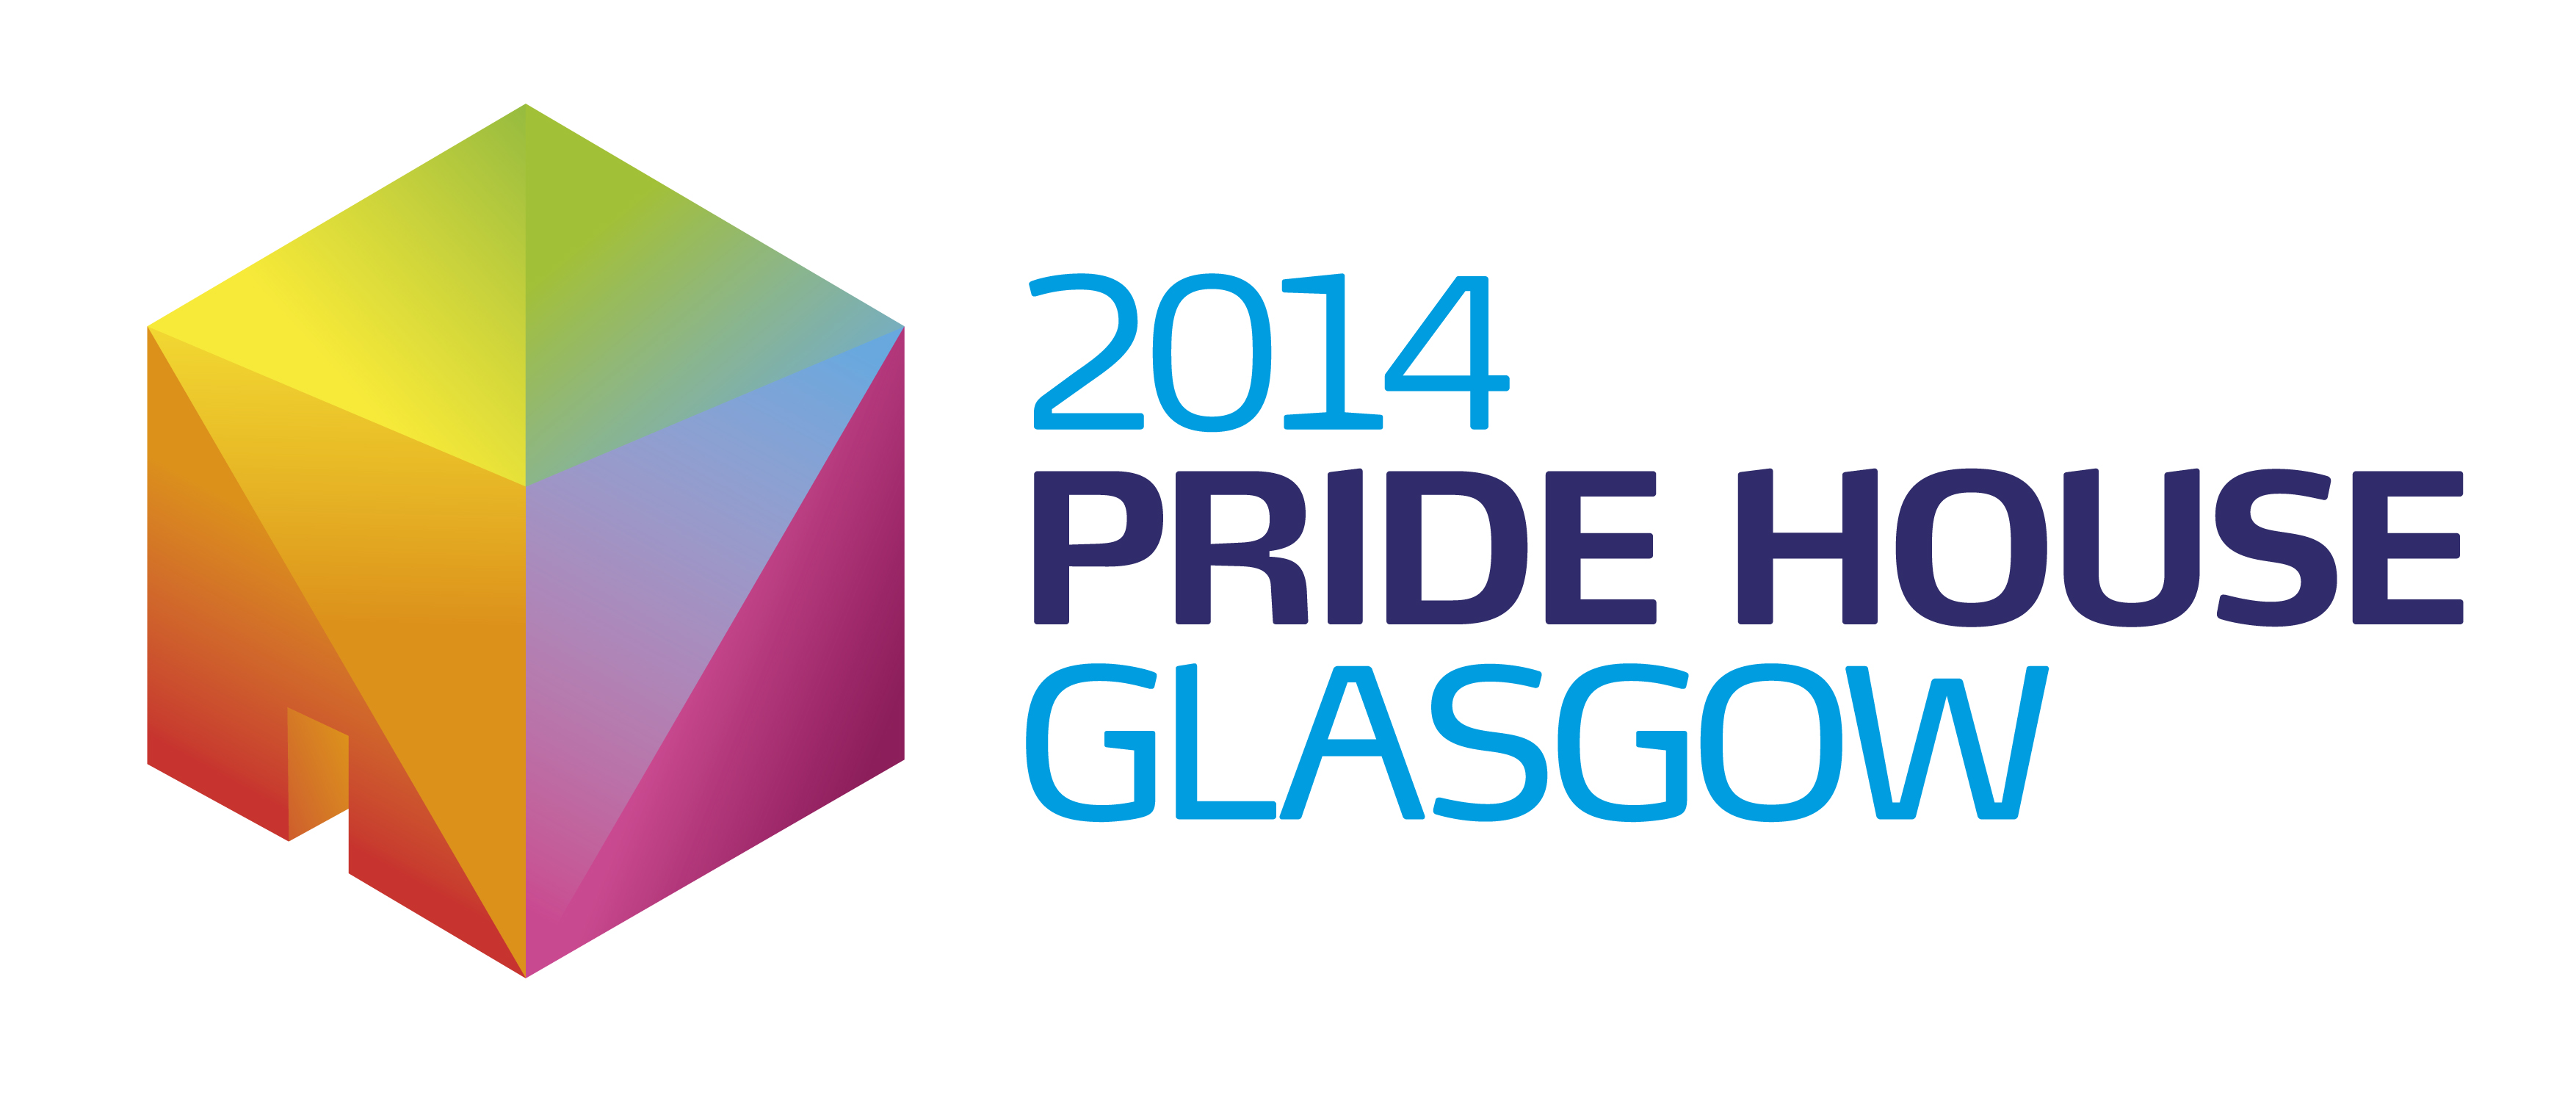 2014 Pride House Glasgow  is looking for Home Hosts